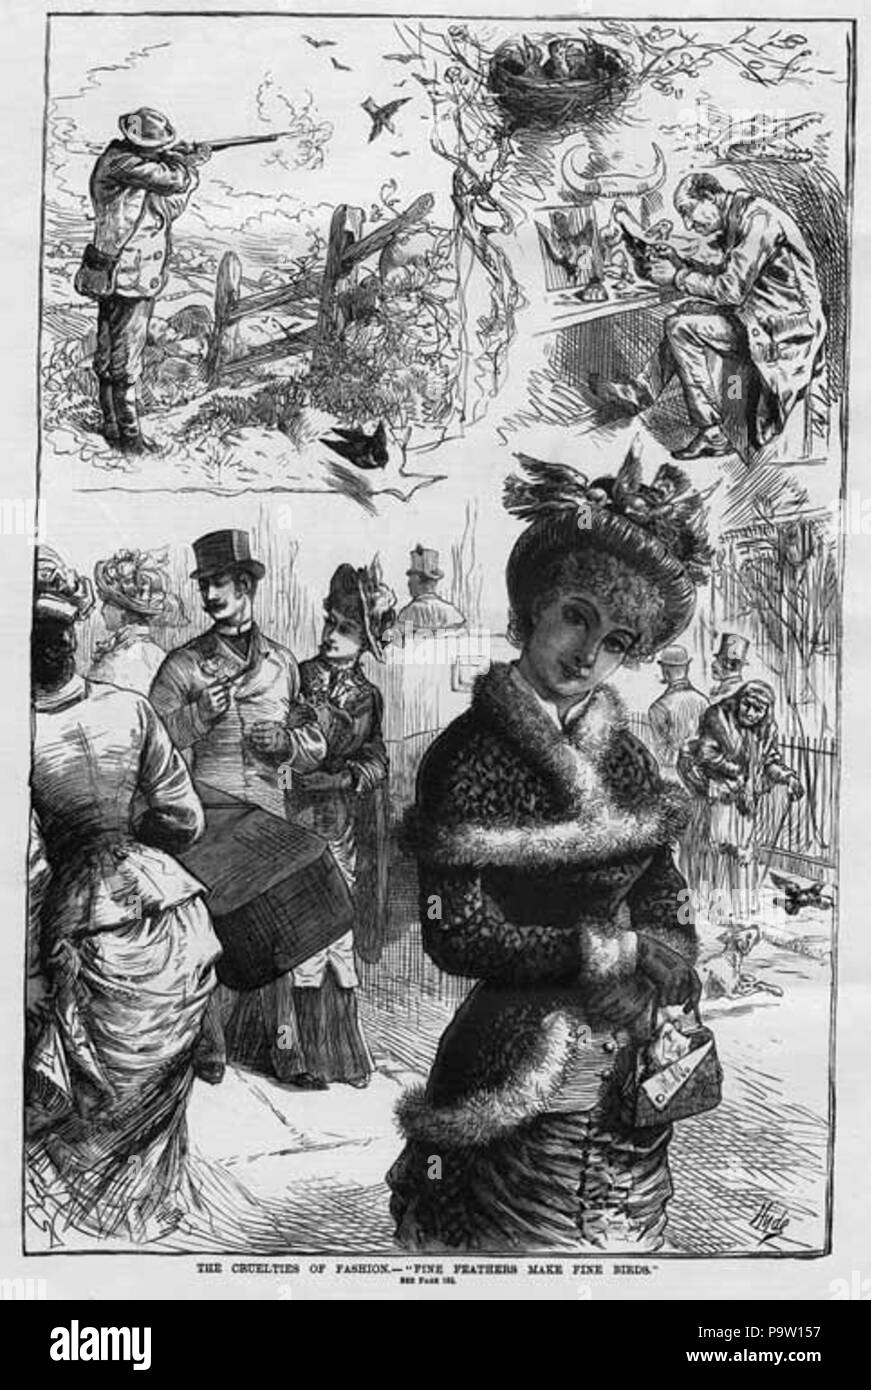 . English: 'The cruelties of fashion: fine feathers make fine birds'. From Frank Leslie's Illustrated Newspaper (November 10, 1883), p. 184. Originally published 1883 359 Cruelties-of-fashion - Stock Image